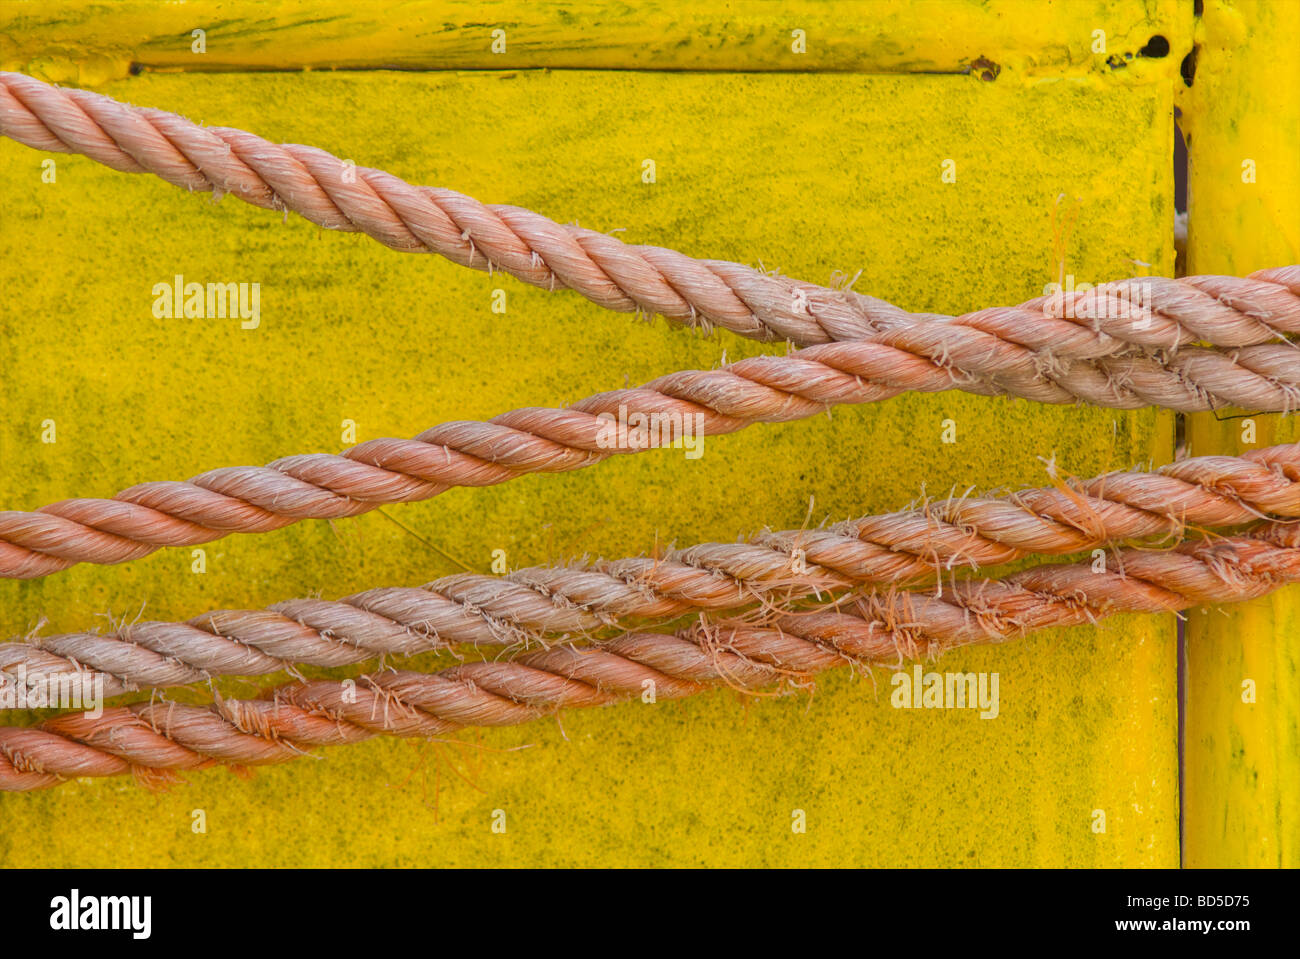 Rope attached to a yellow trolley in Deira, Dubai, United Arab Emirates (UAE) - Stock Image